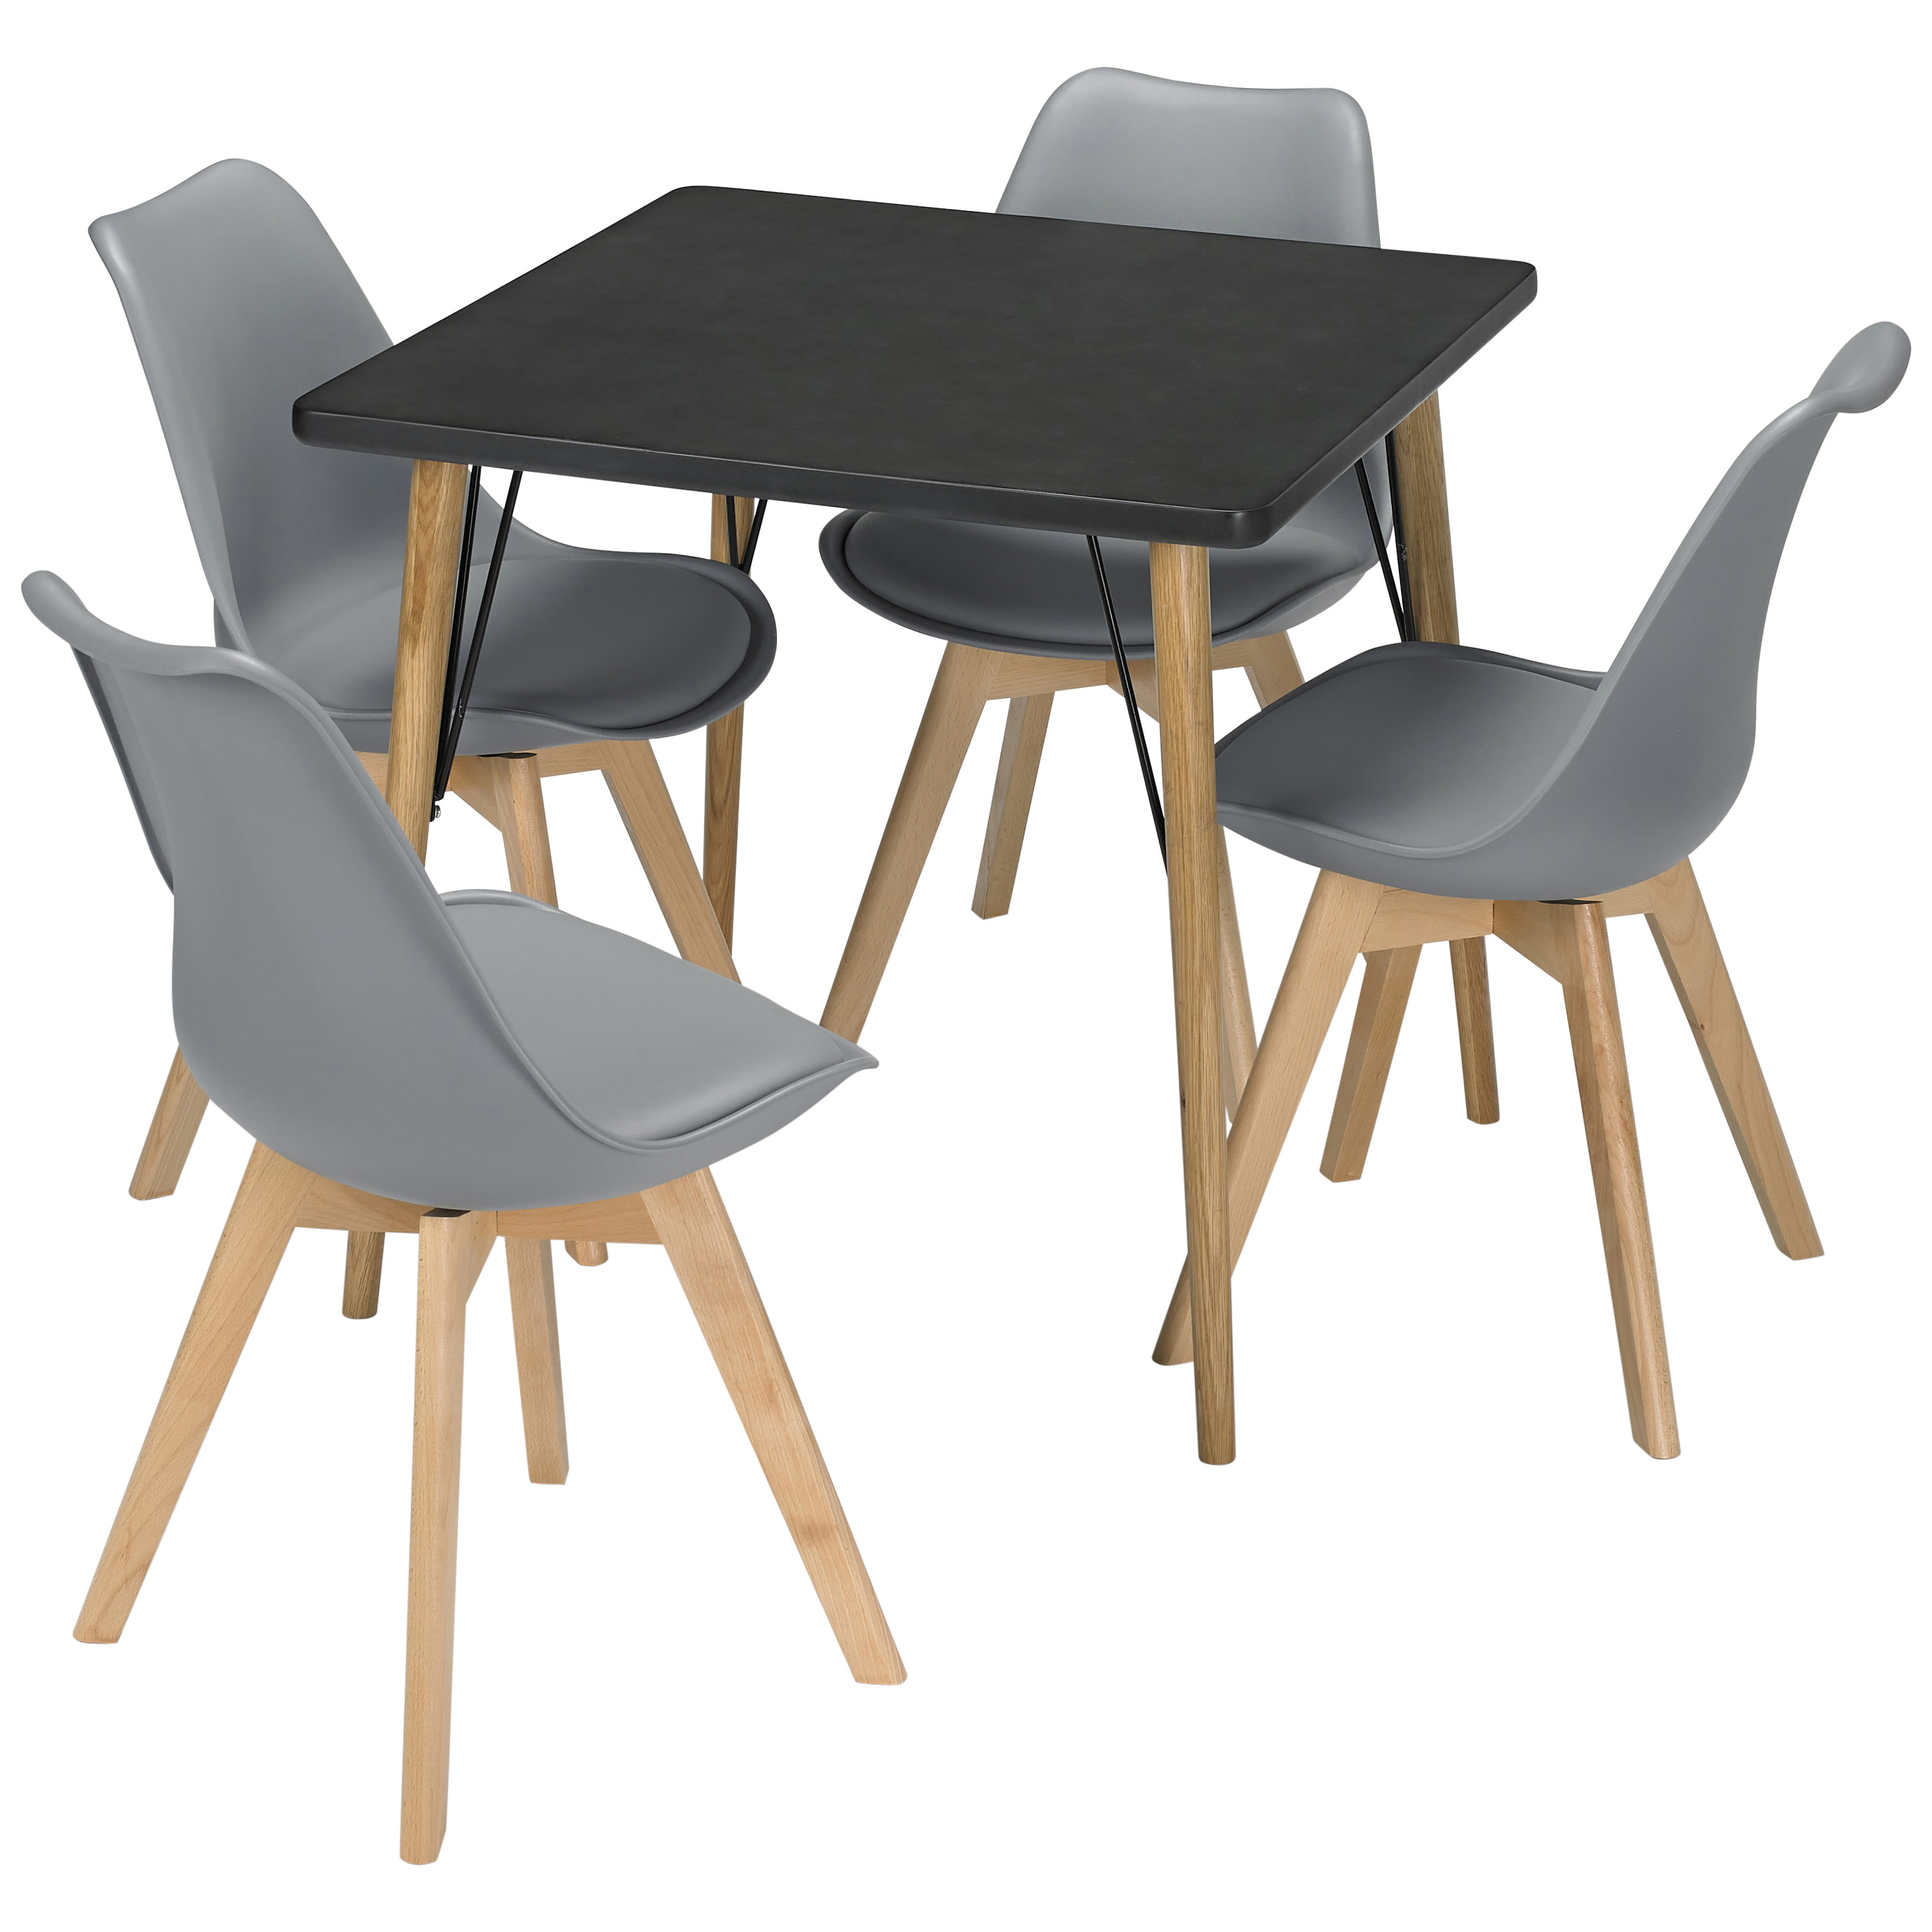 Solid Oak Dining Table And Chair Set With 4 Seats Black Grey White